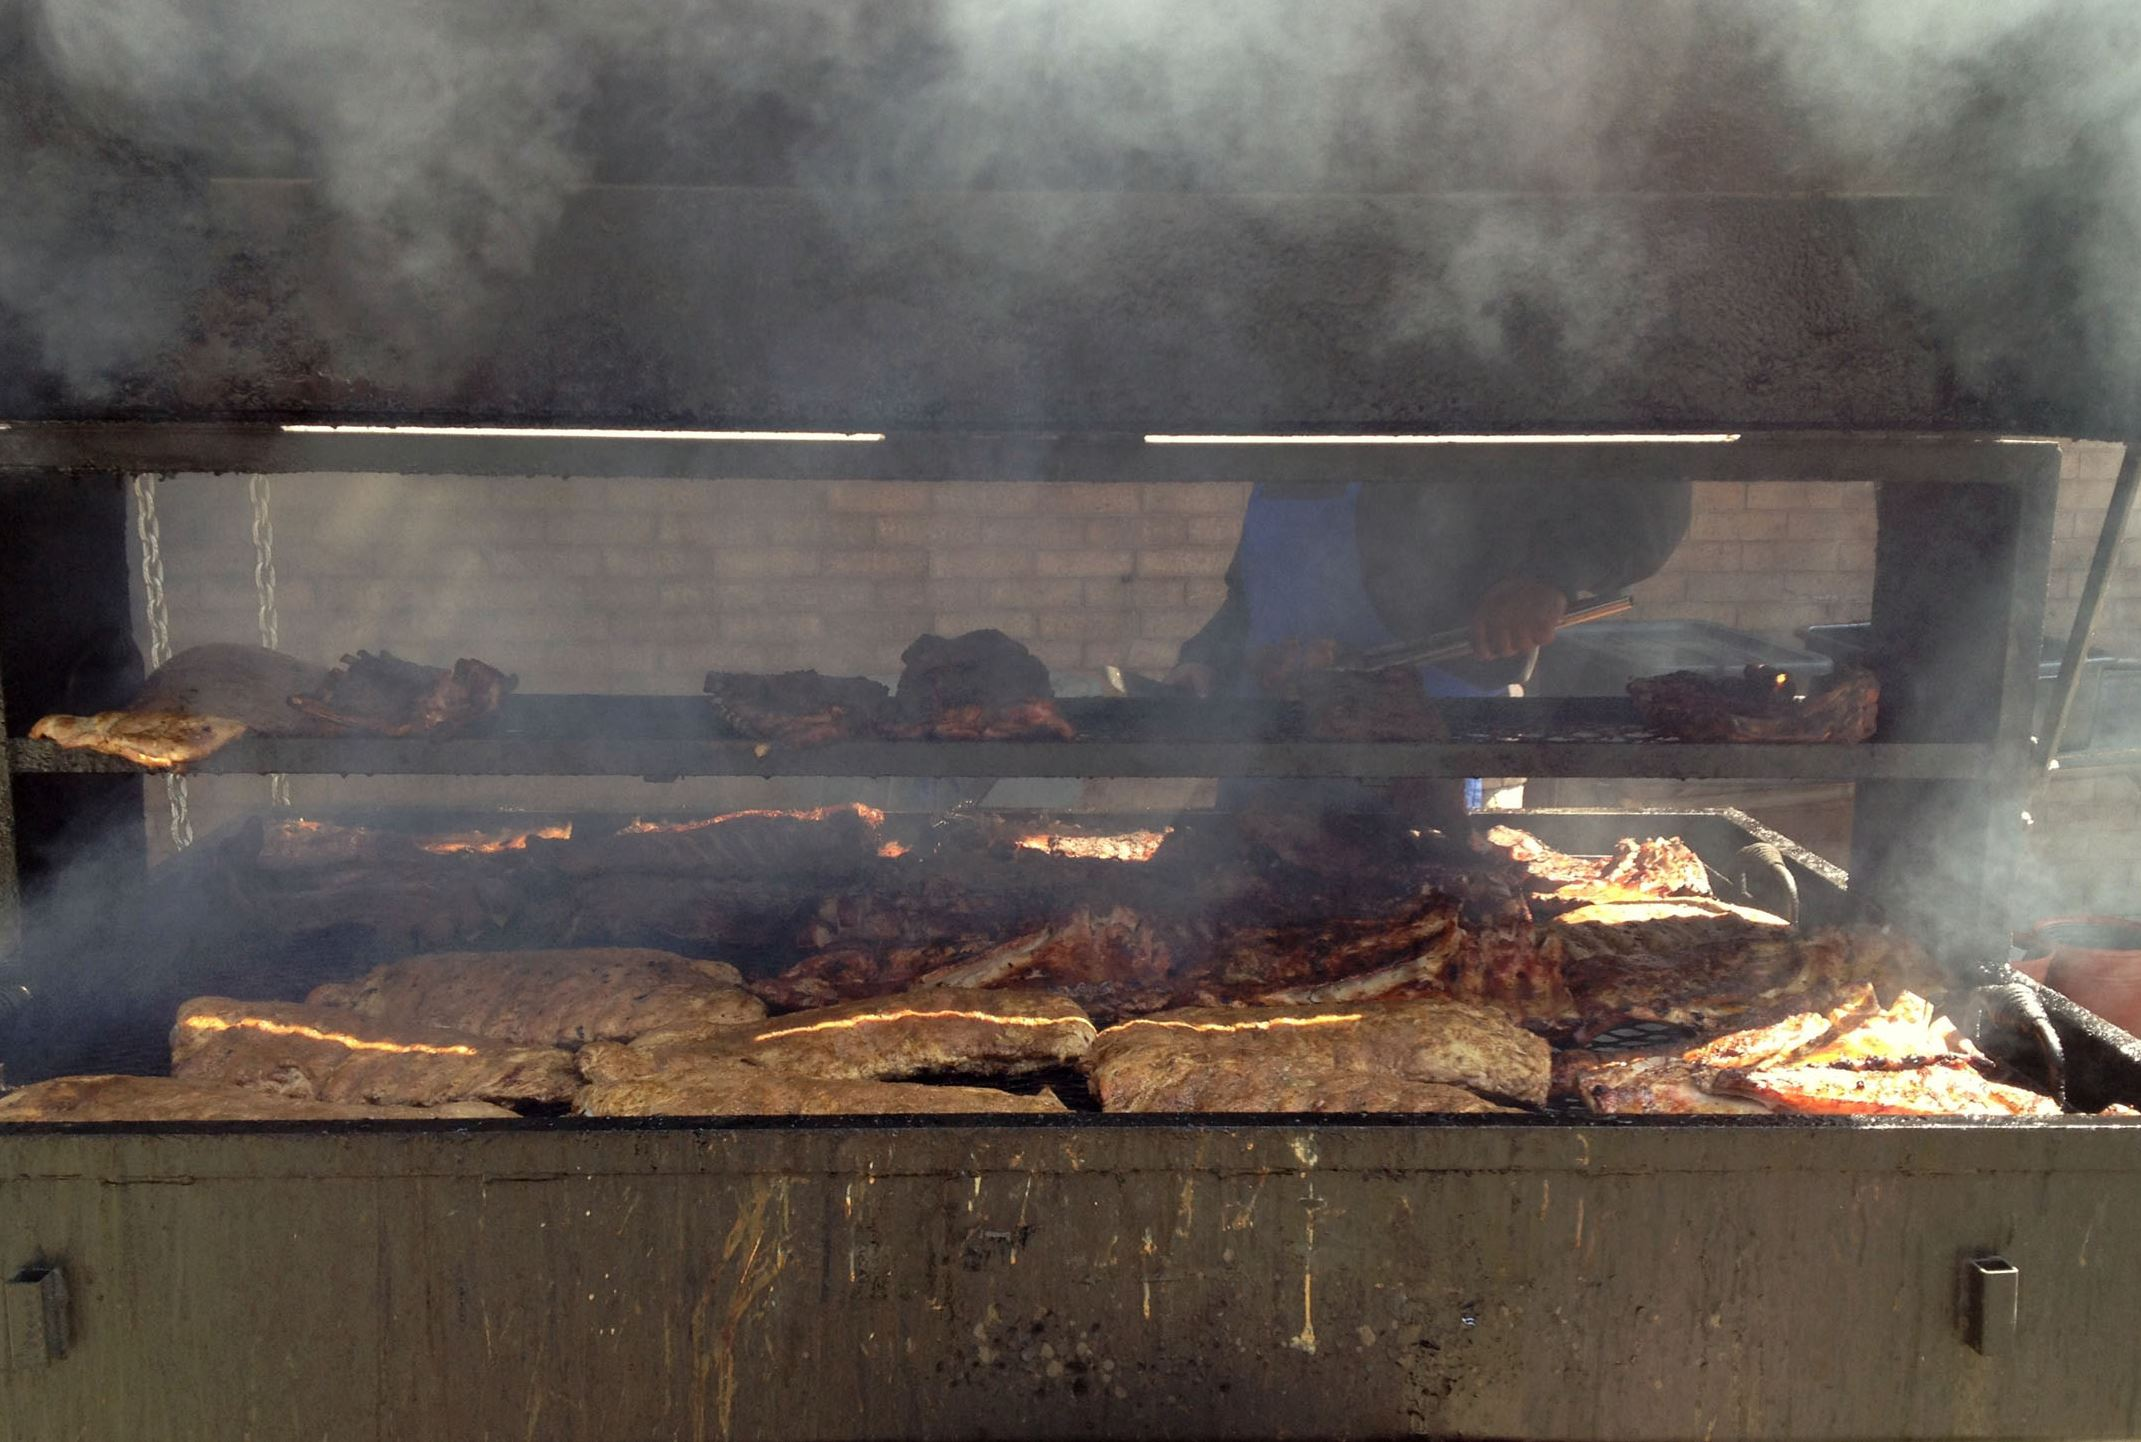 20140410GiglerShowcaseBBQ3-2 Racks of ribs cook on one of the two massive grills at Showcase BBQ in Homewood.